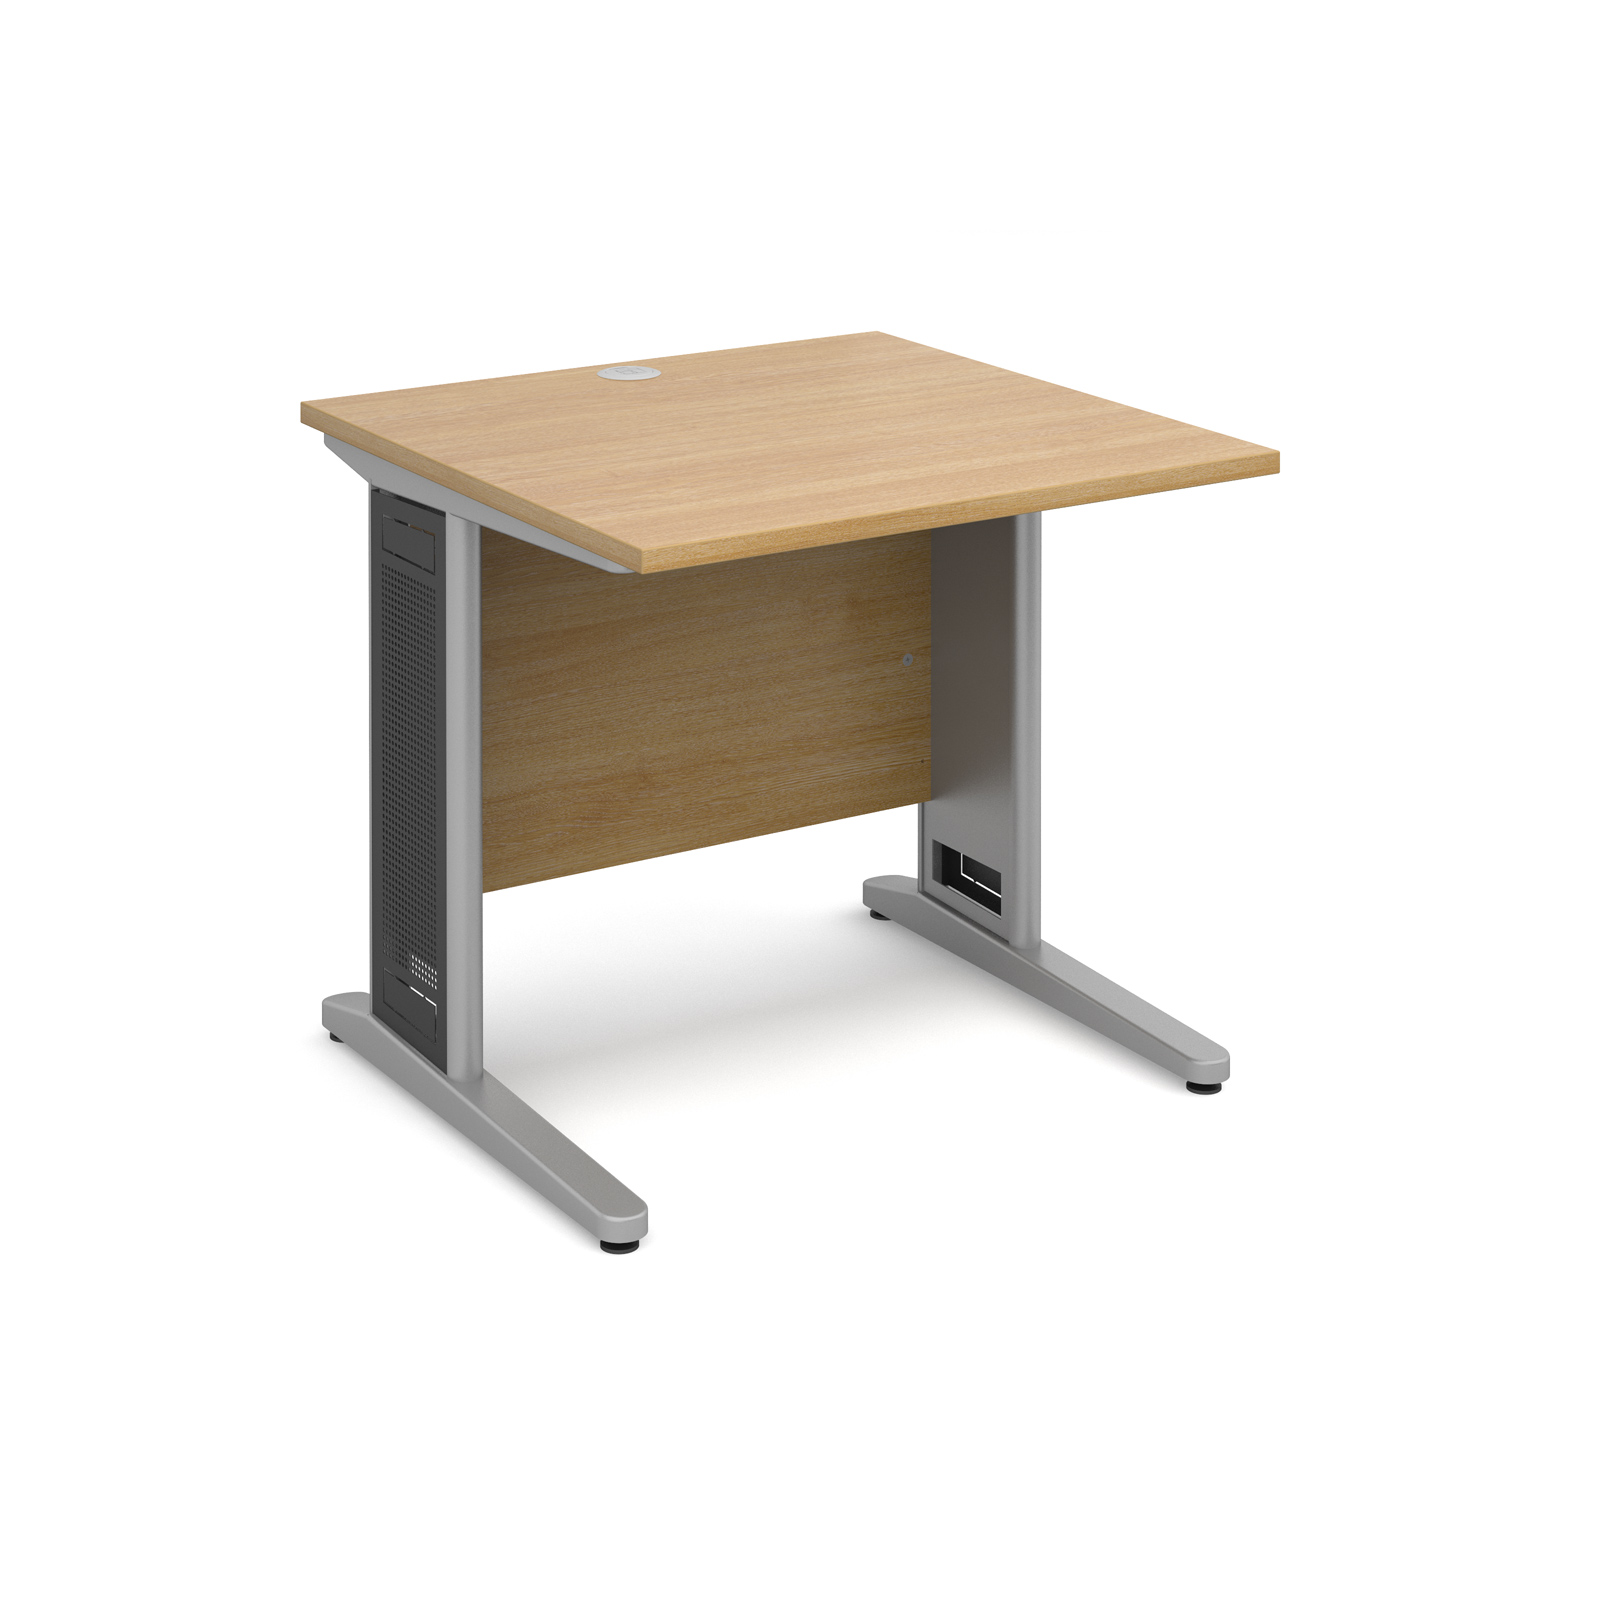 Largo straight desk 800mm x 800mm - silver cantilever frame with removable grill, oak top